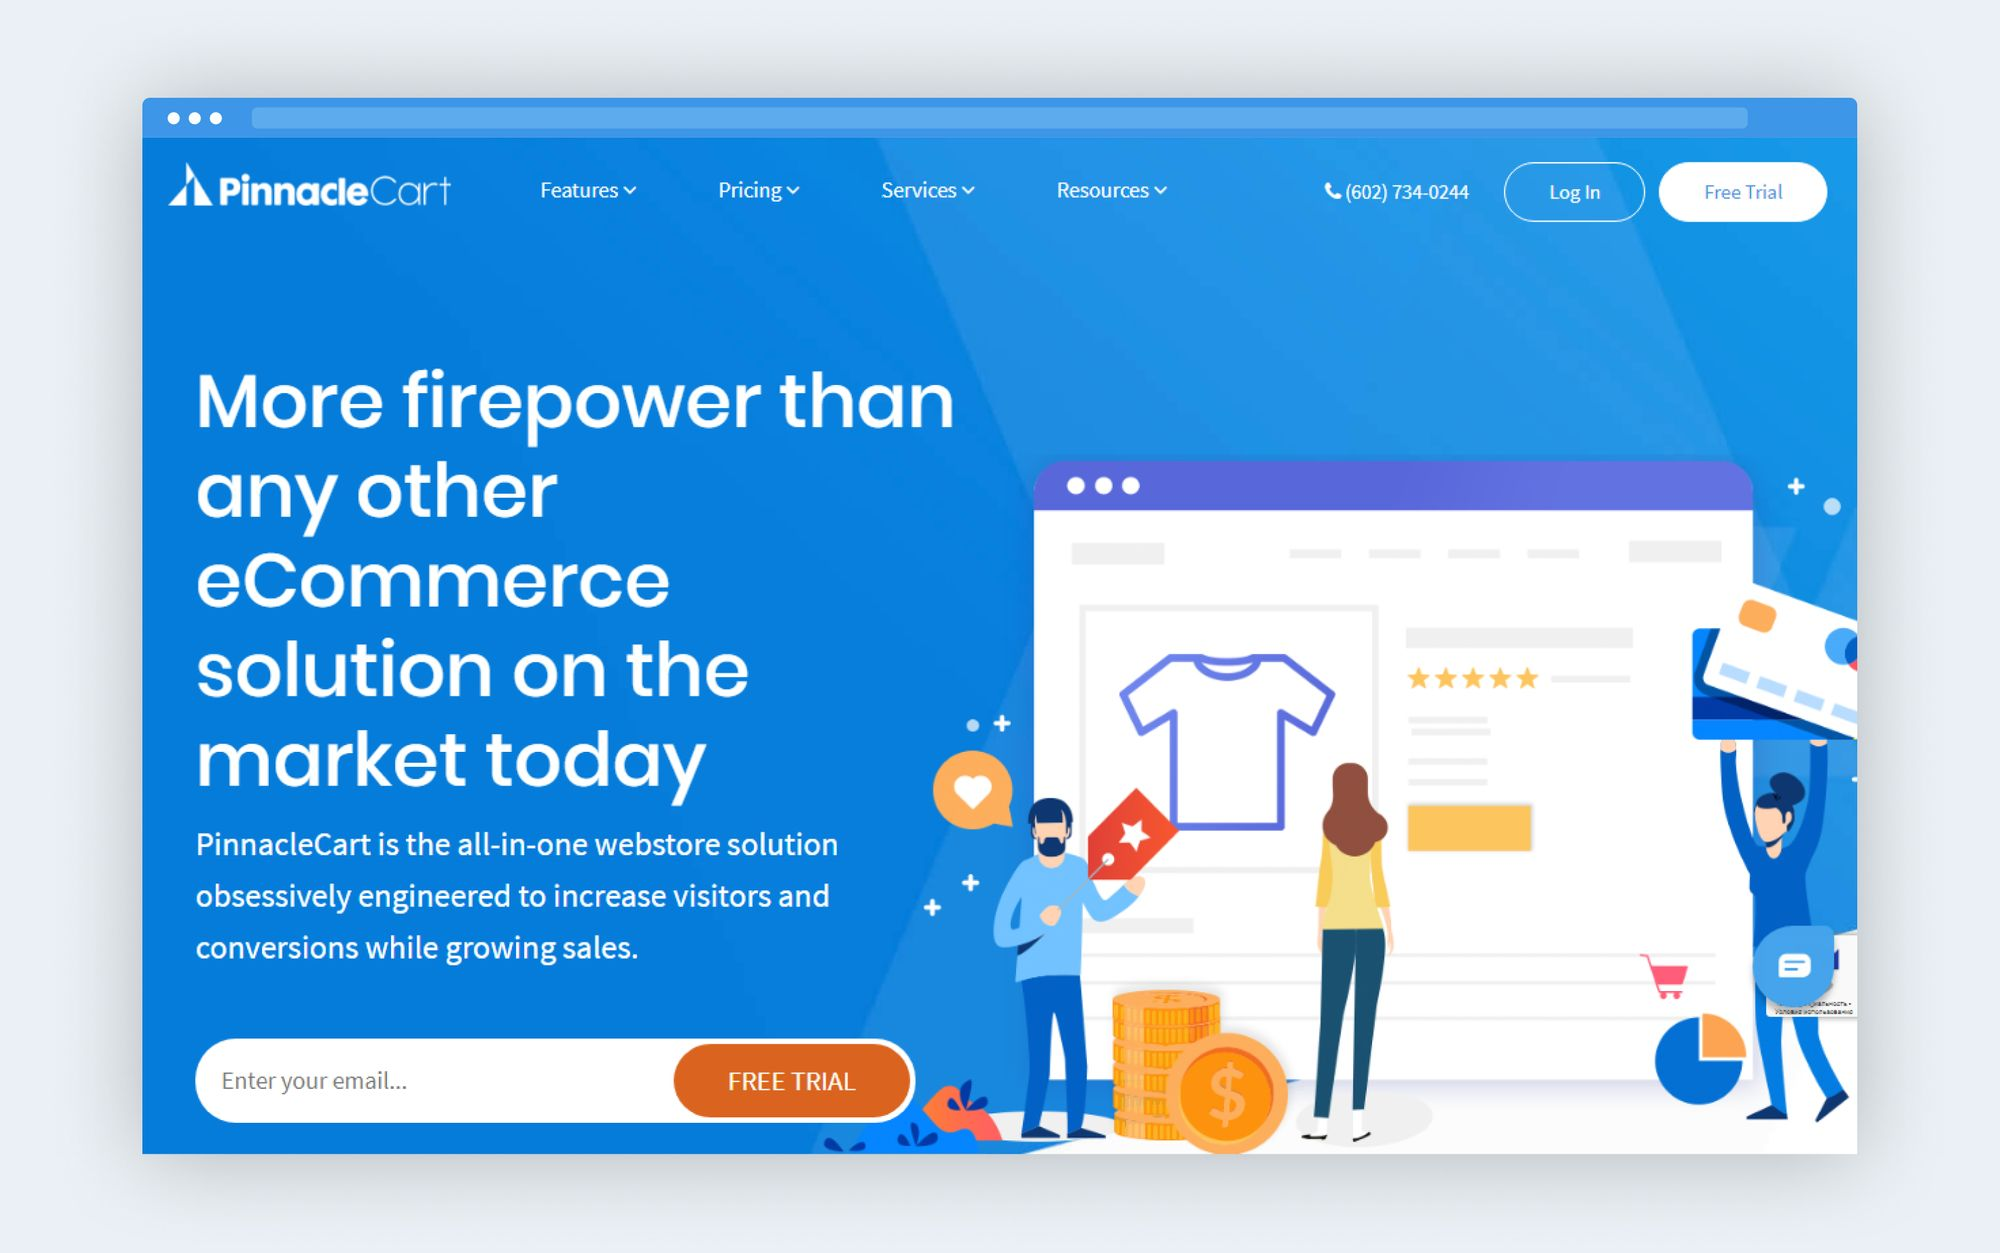 PinnacleCart platform